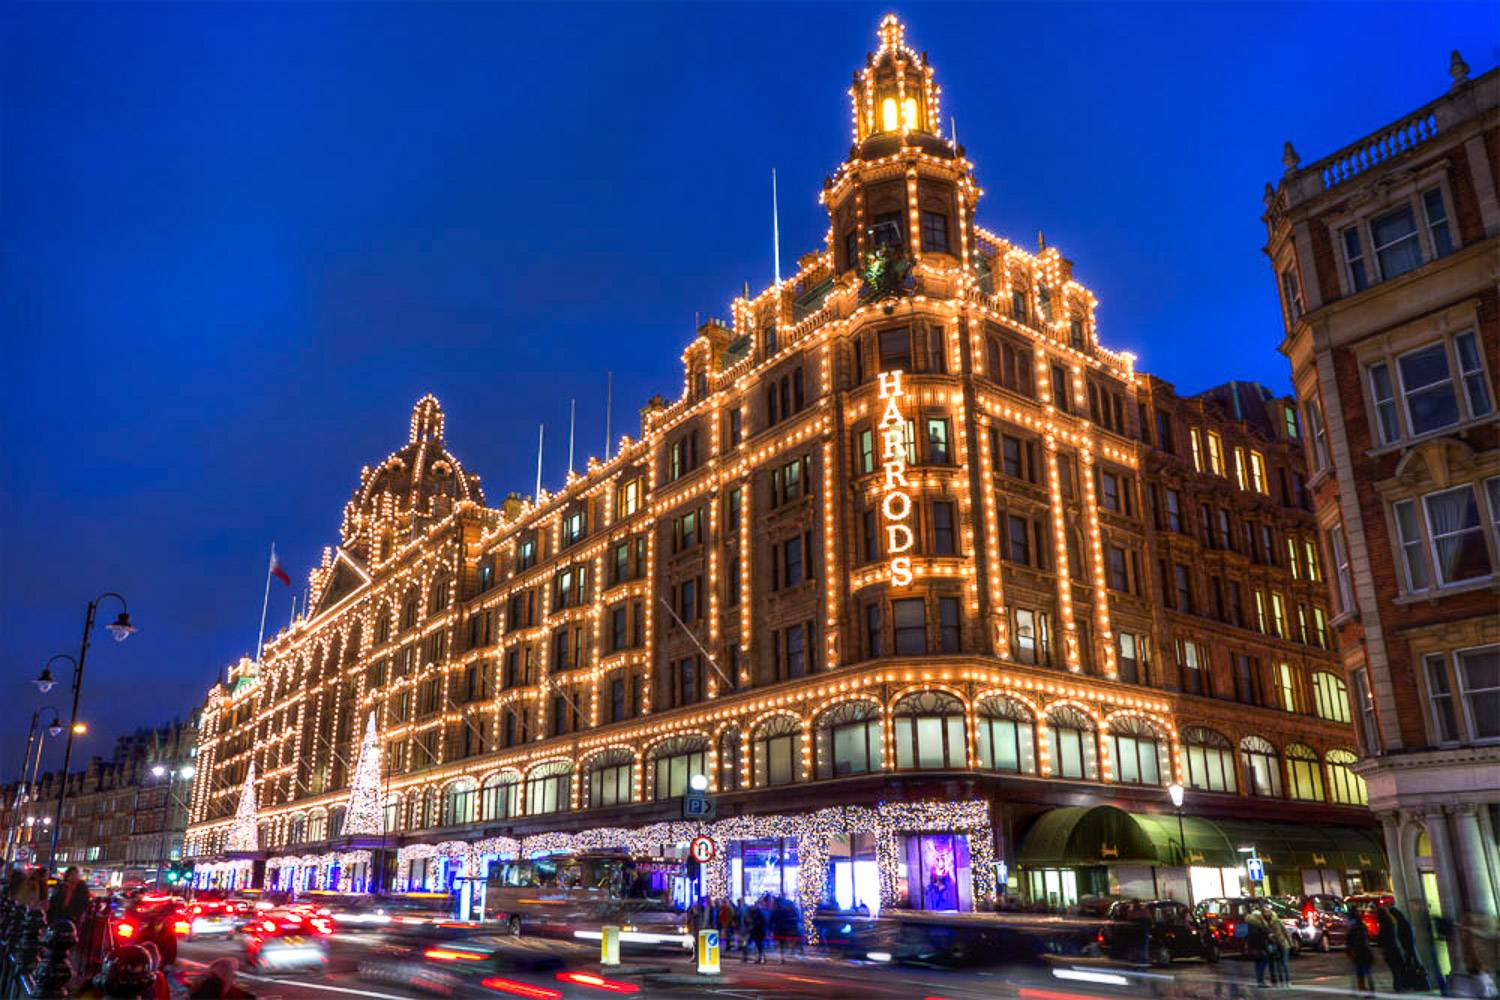 An image of the luxury emporium, Harrods, decorated in festive holiday lights in Knightsbridge, London.